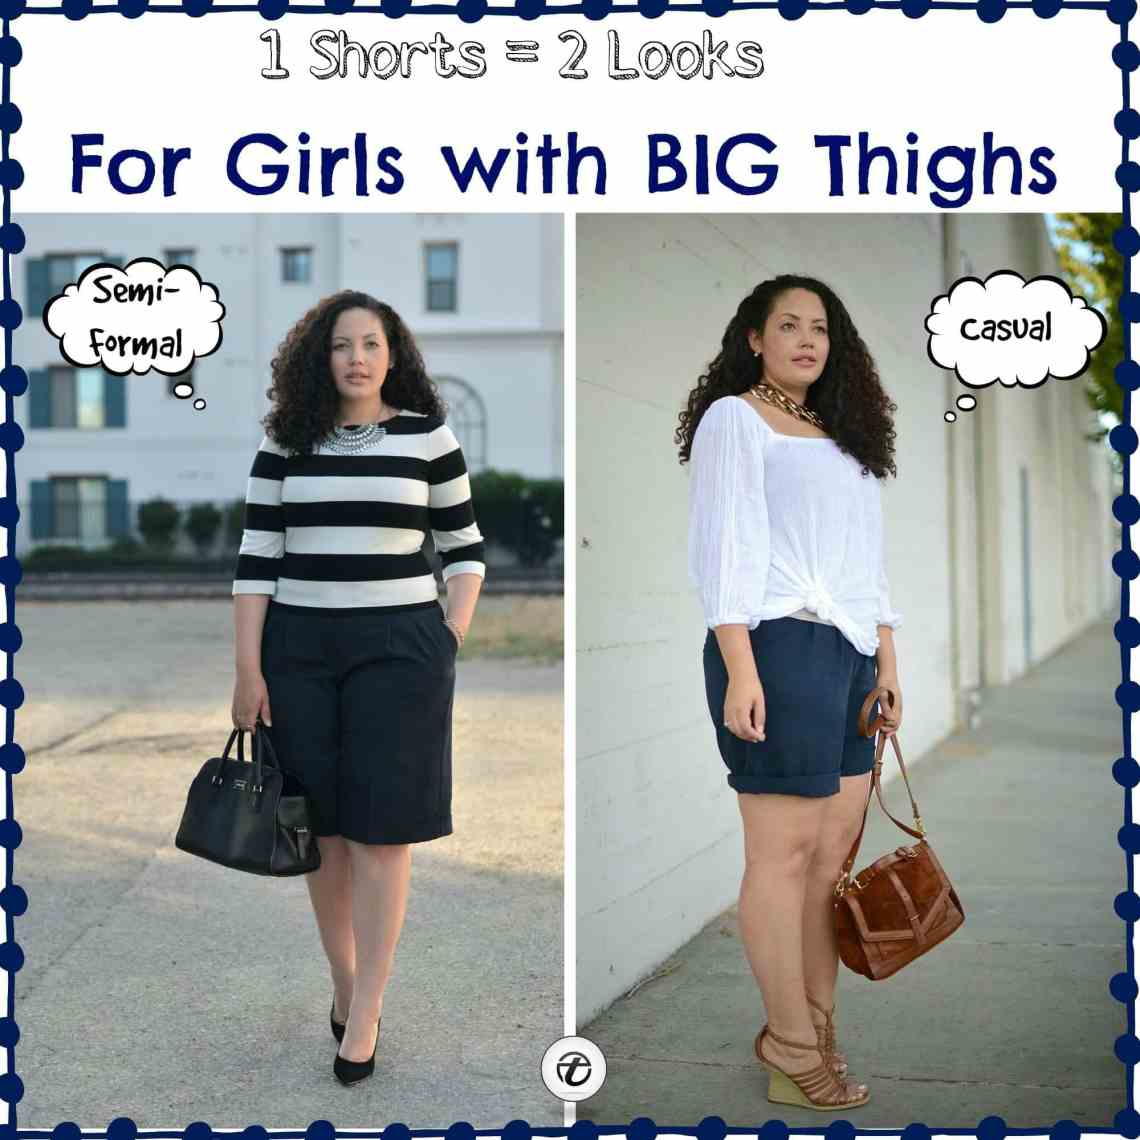 19 Outfit Ideas for Women with Big Thighs for Chic Look